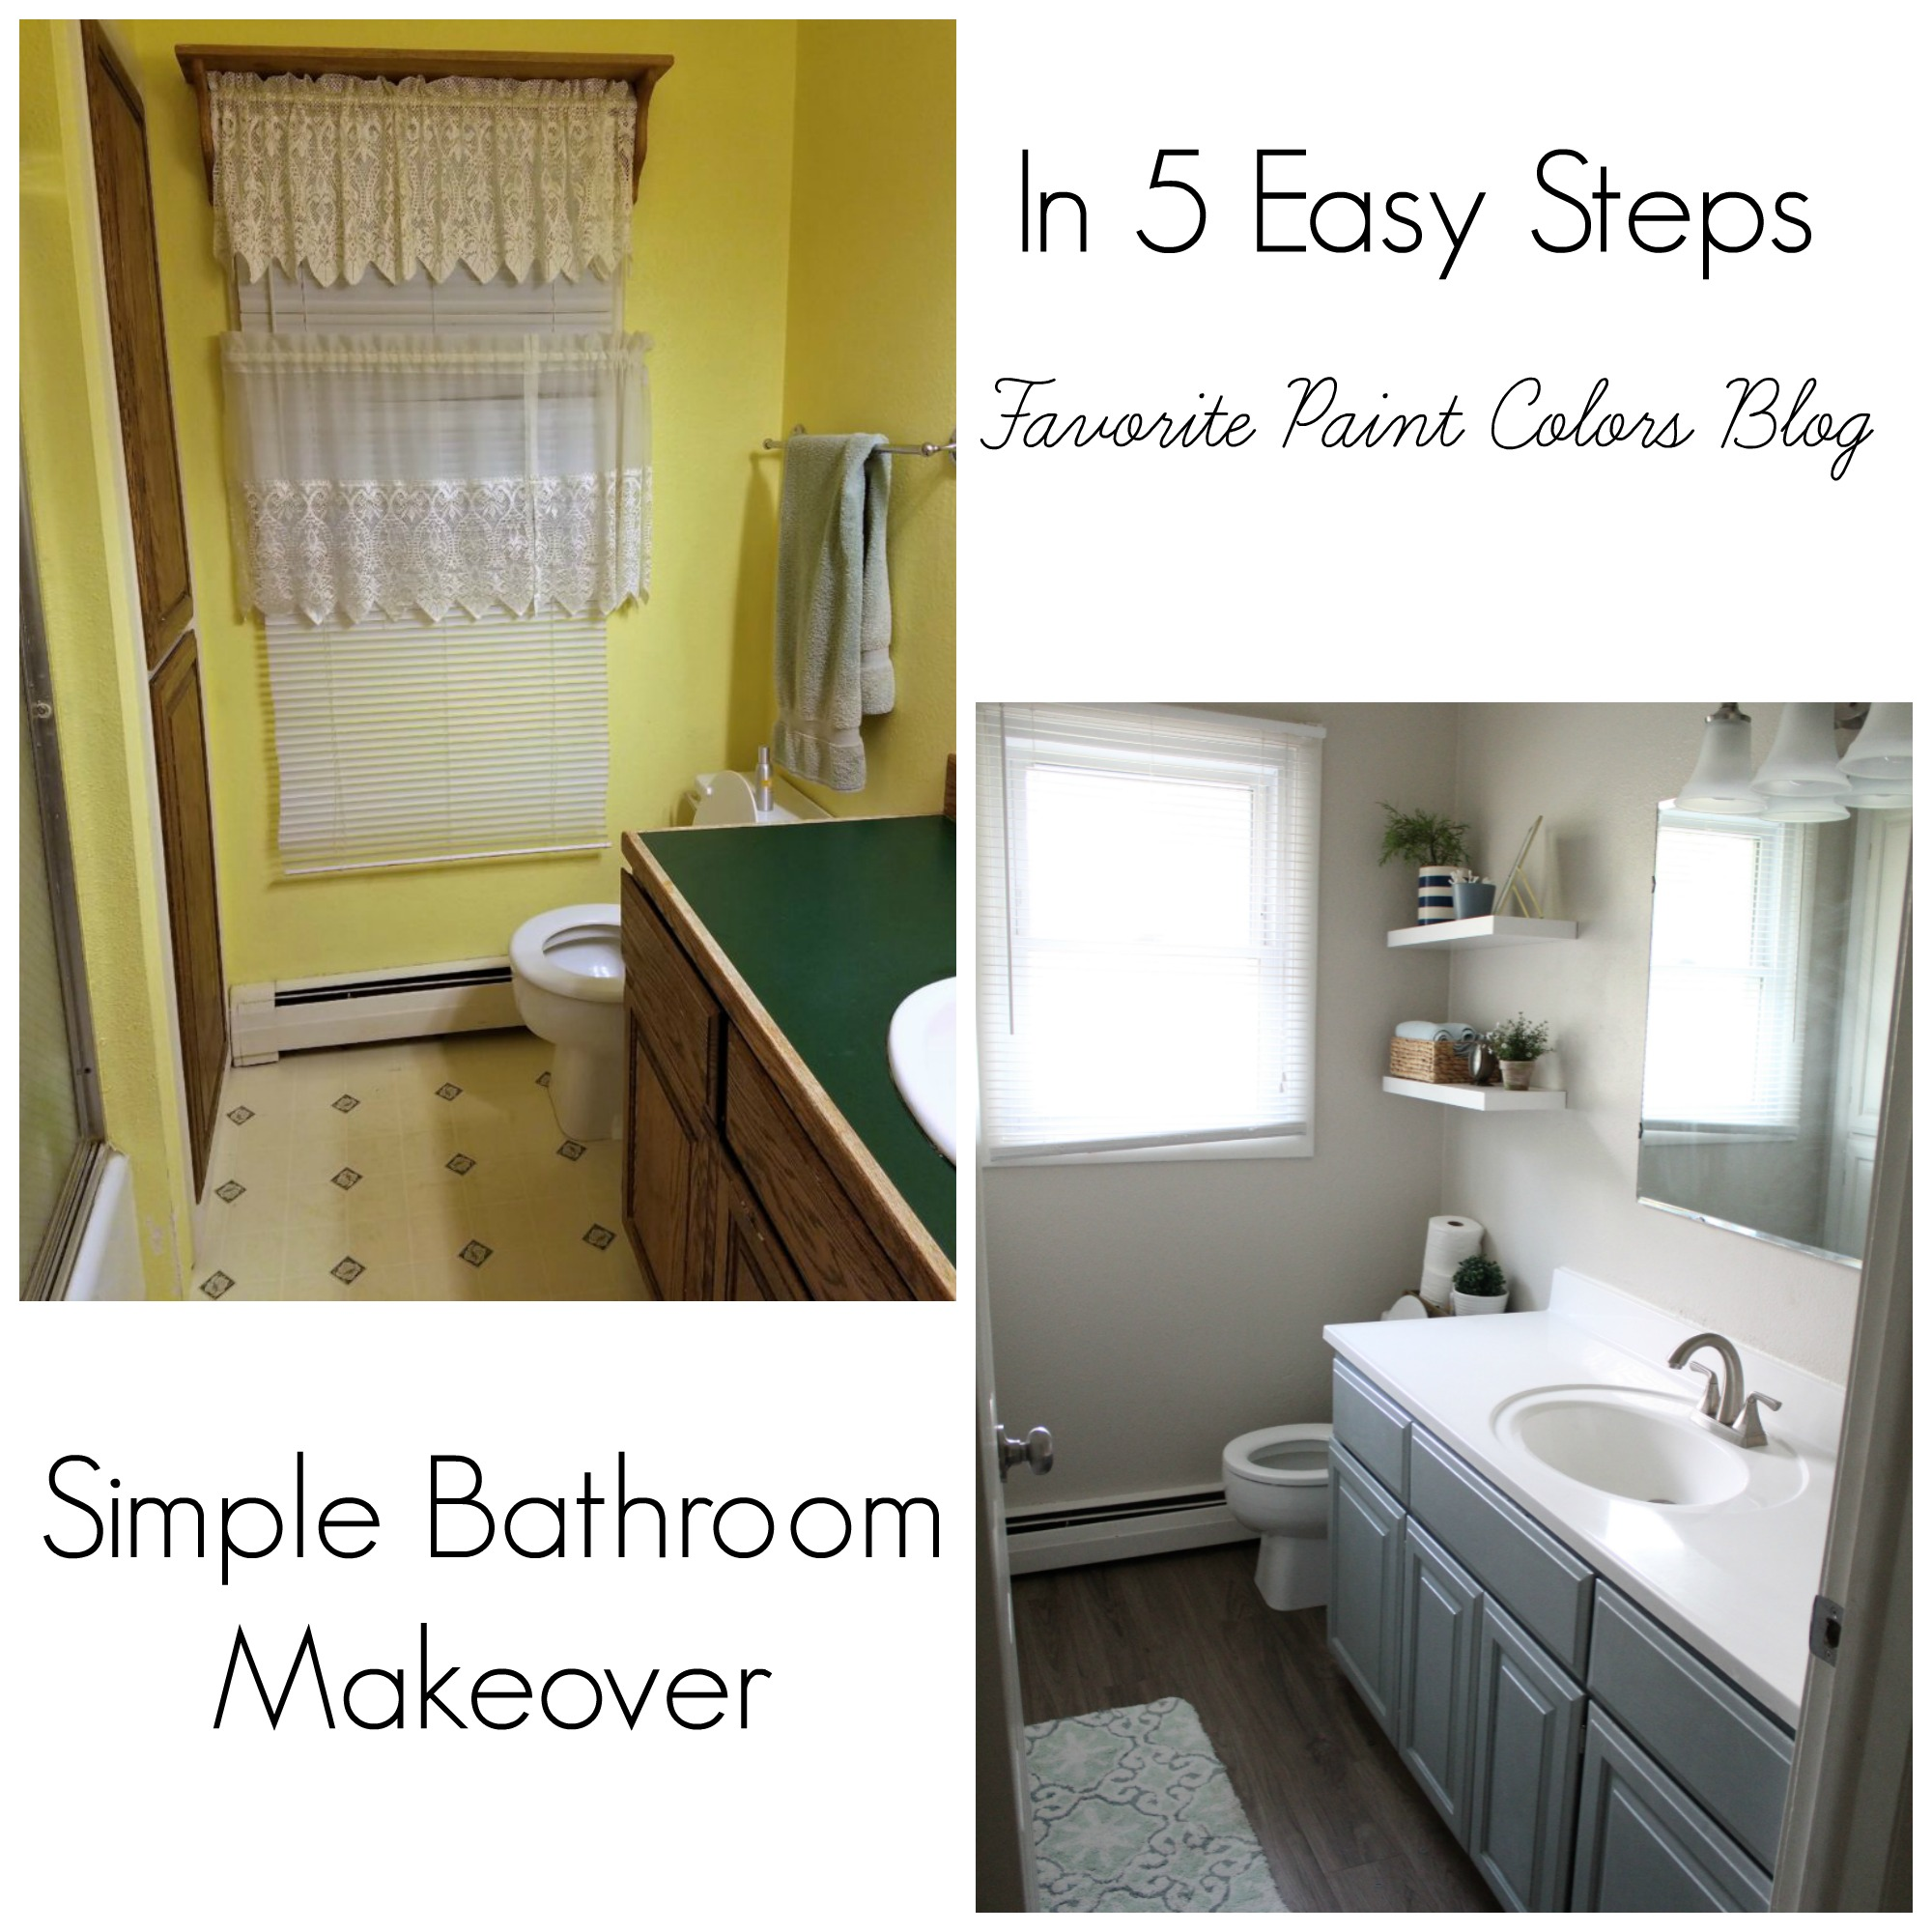 Bathroom Makeovers Price simple bathroom makeover in 5 easy steps | favorite paint colors blog